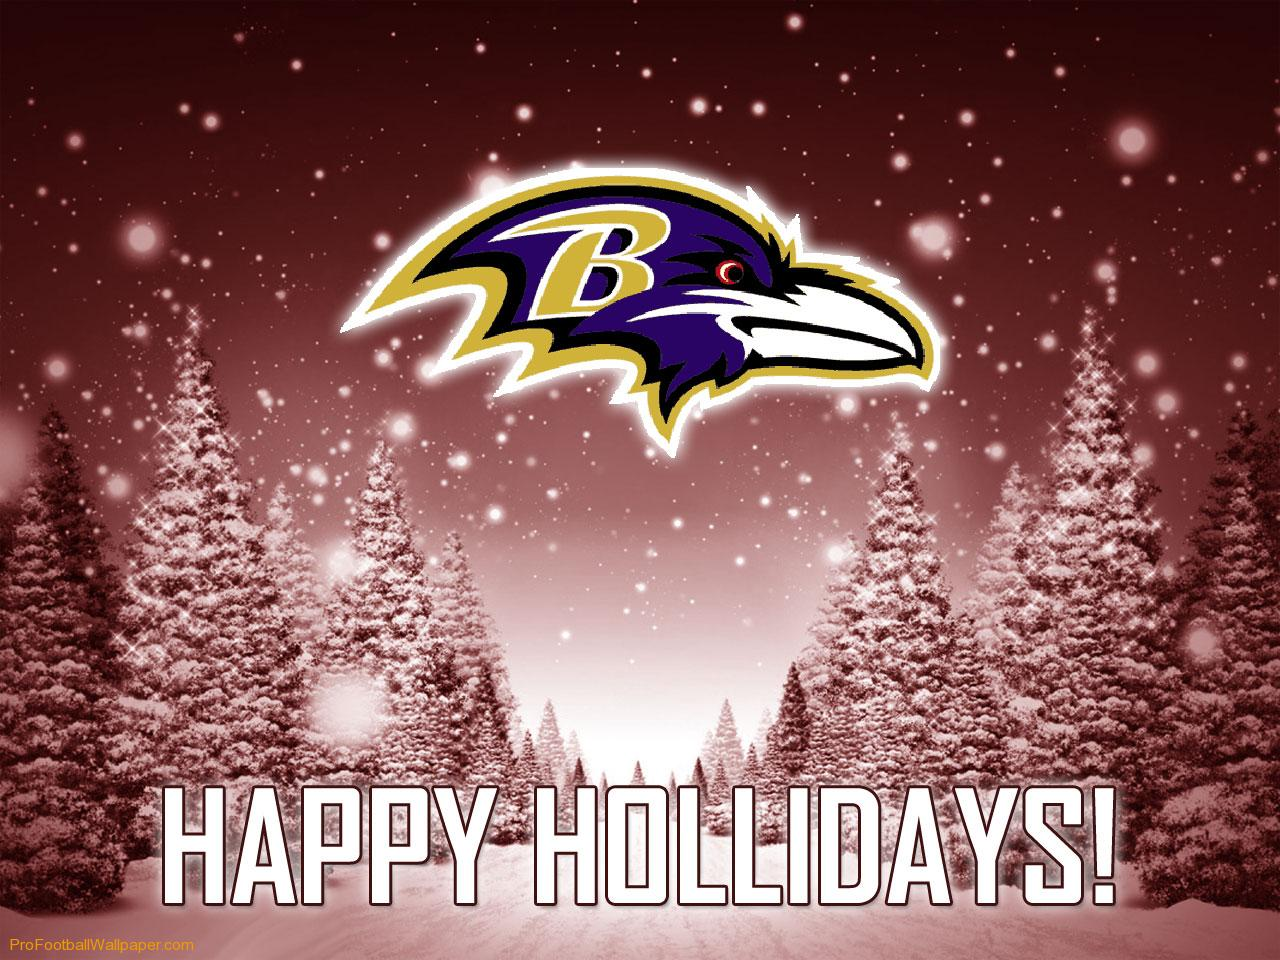 Baltimore Ravens Holidays Wallpaper 177612 HD Wallpaper Res 1280x960 1280x960